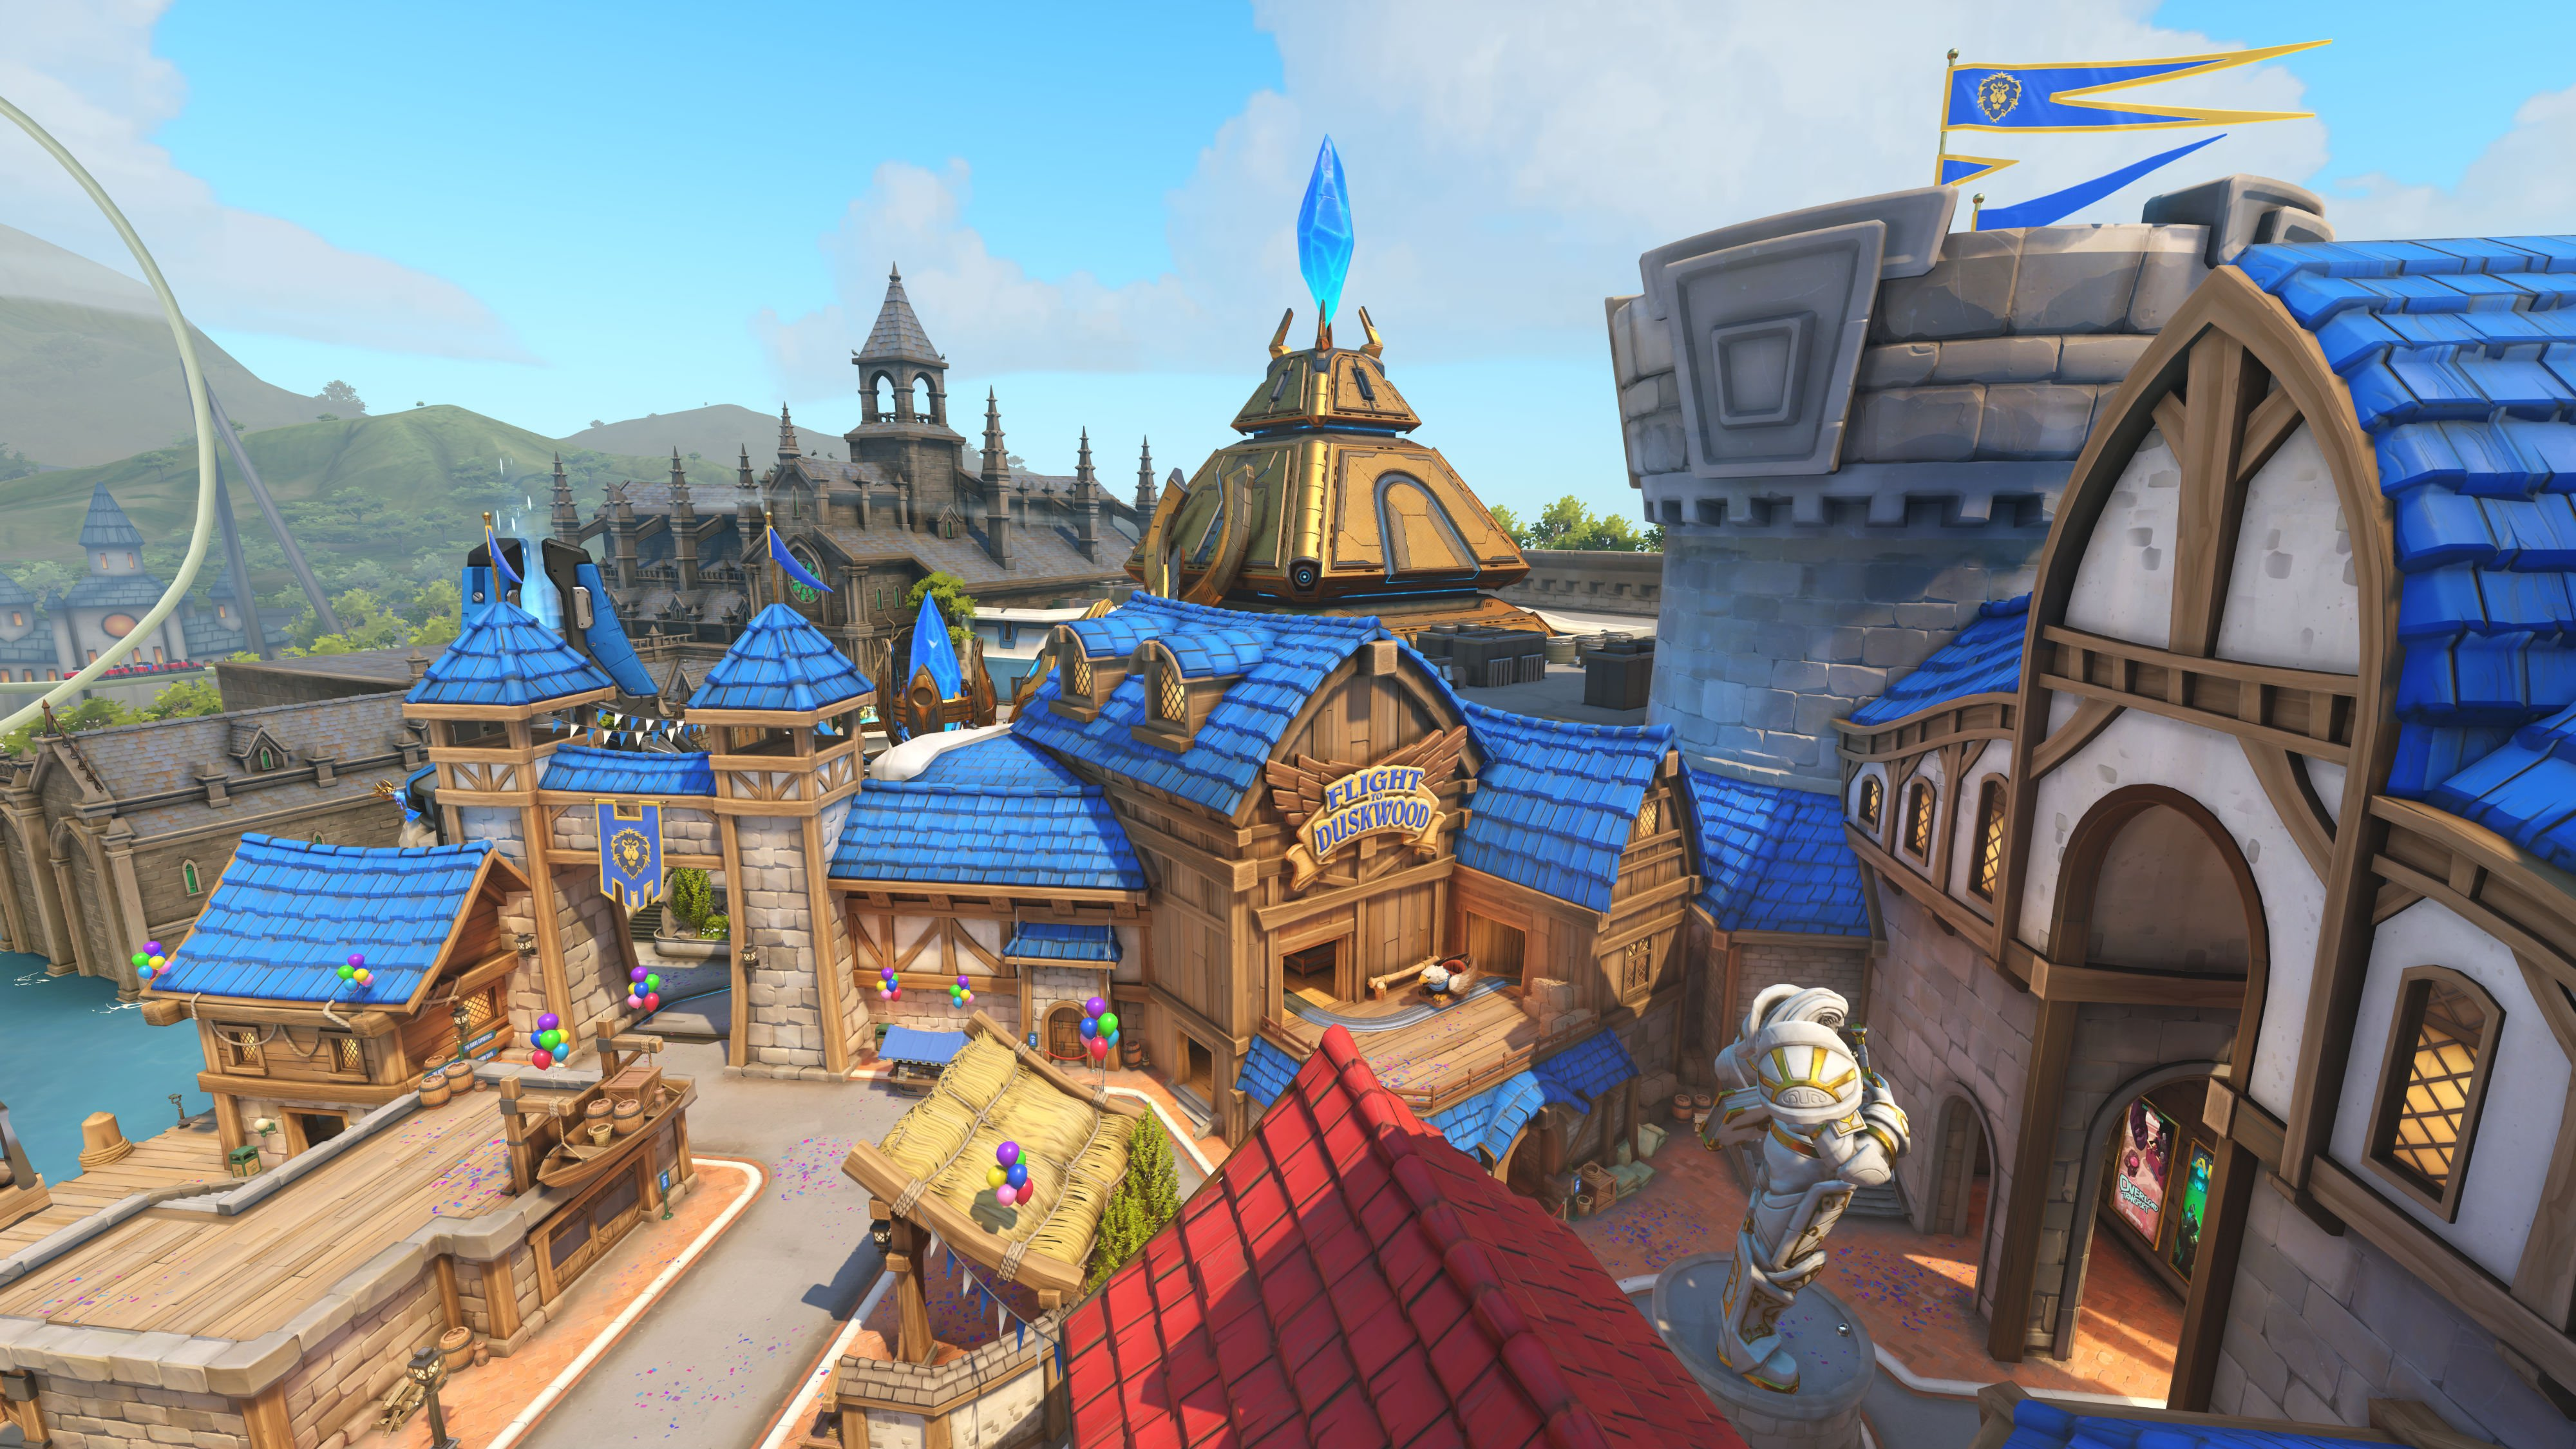 Ill happily play overwatchs new blizzard world map in a rotation blizzard world will arrive sometime in early 2018 and as always will be included in the base game as free content gumiabroncs Image collections